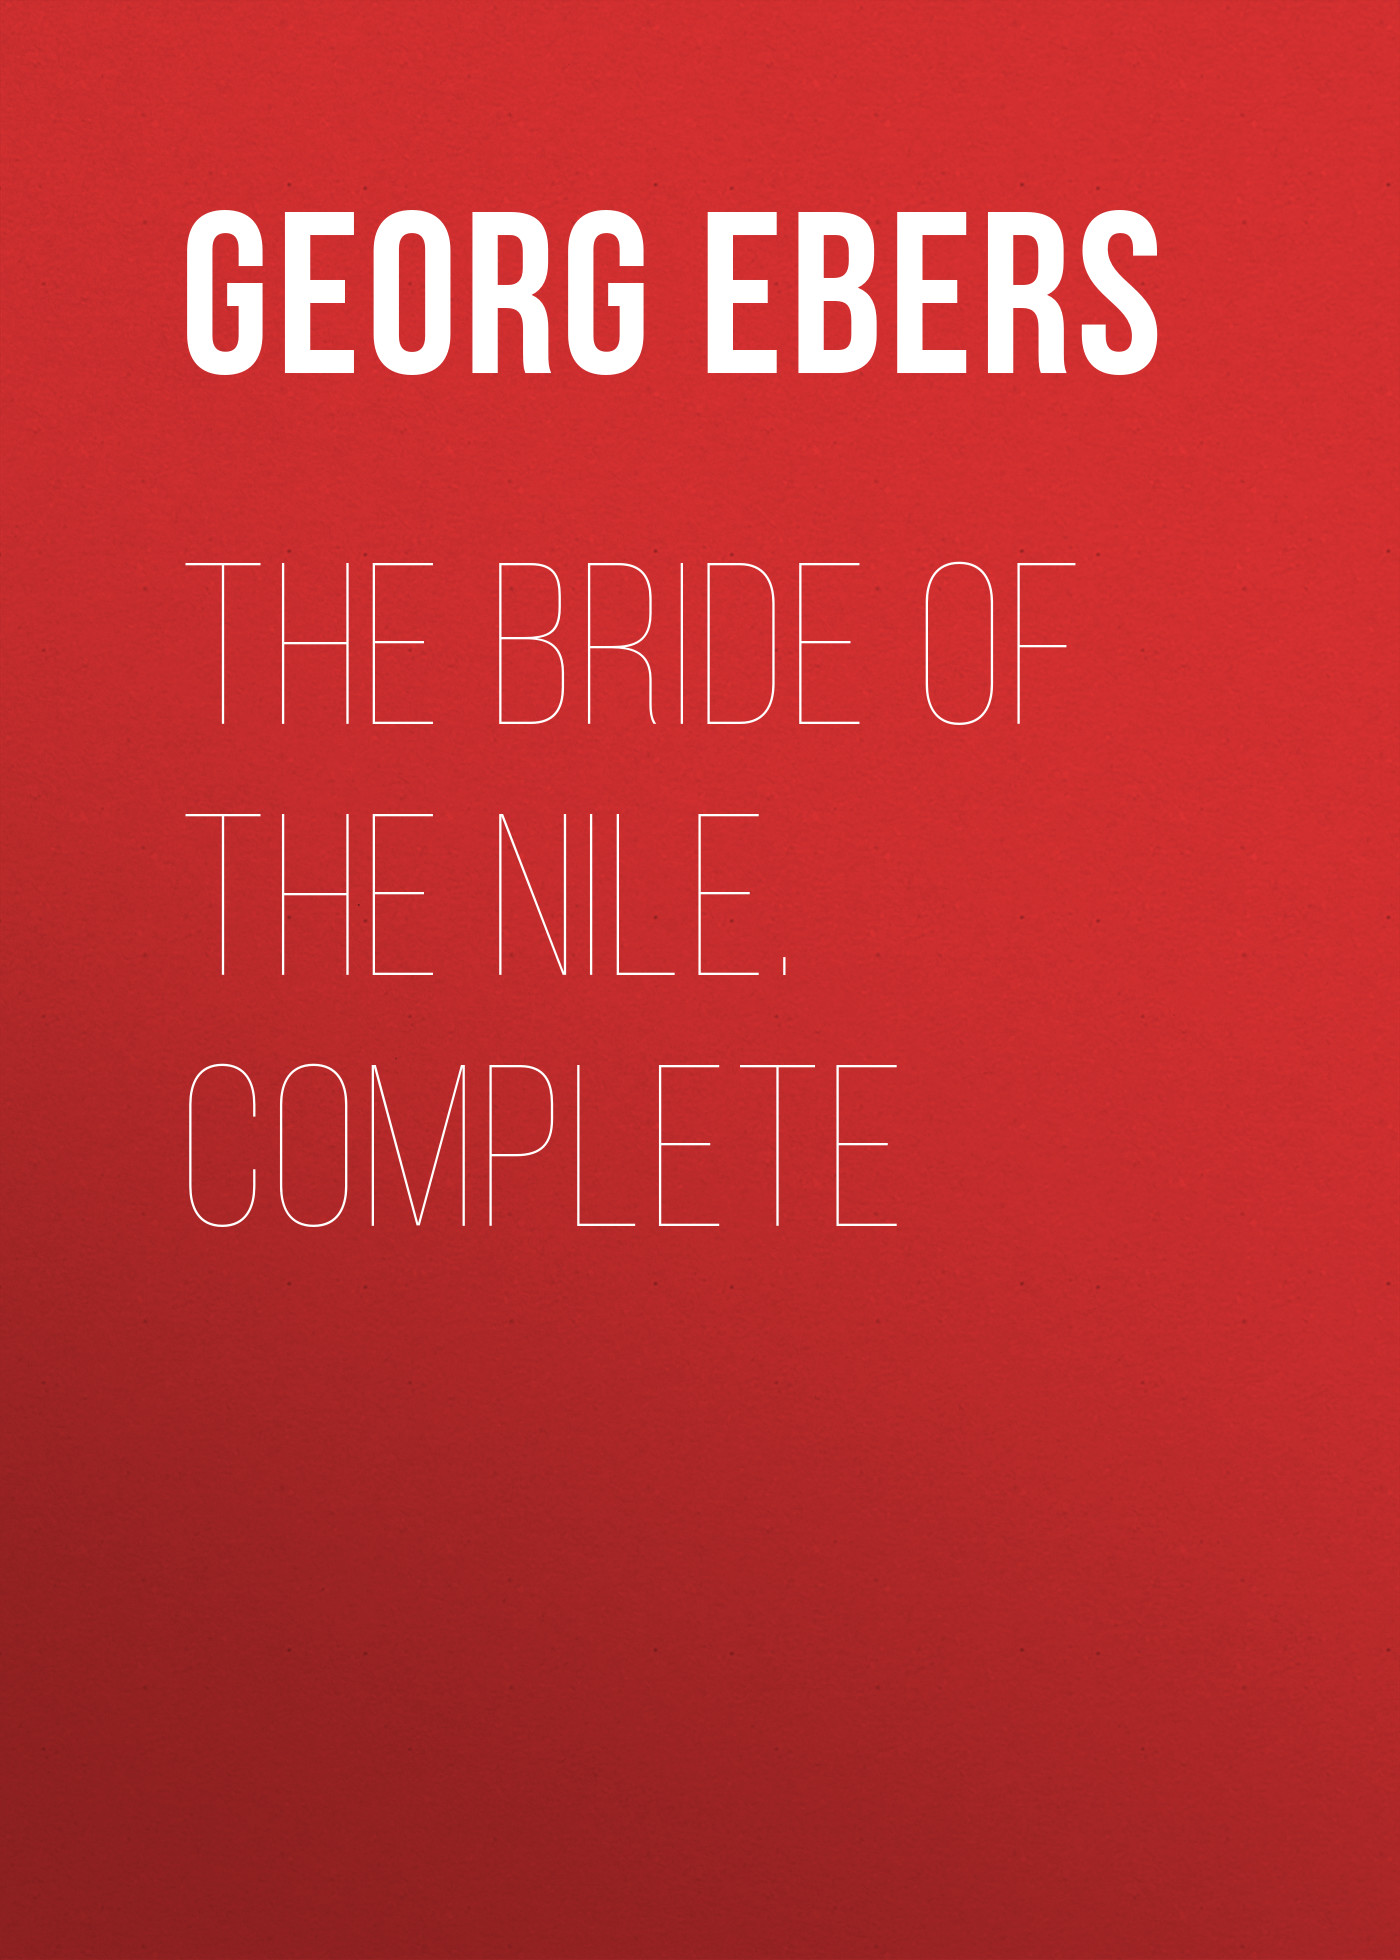 Georg Ebers The Bride of the Nile. Complete the german bride